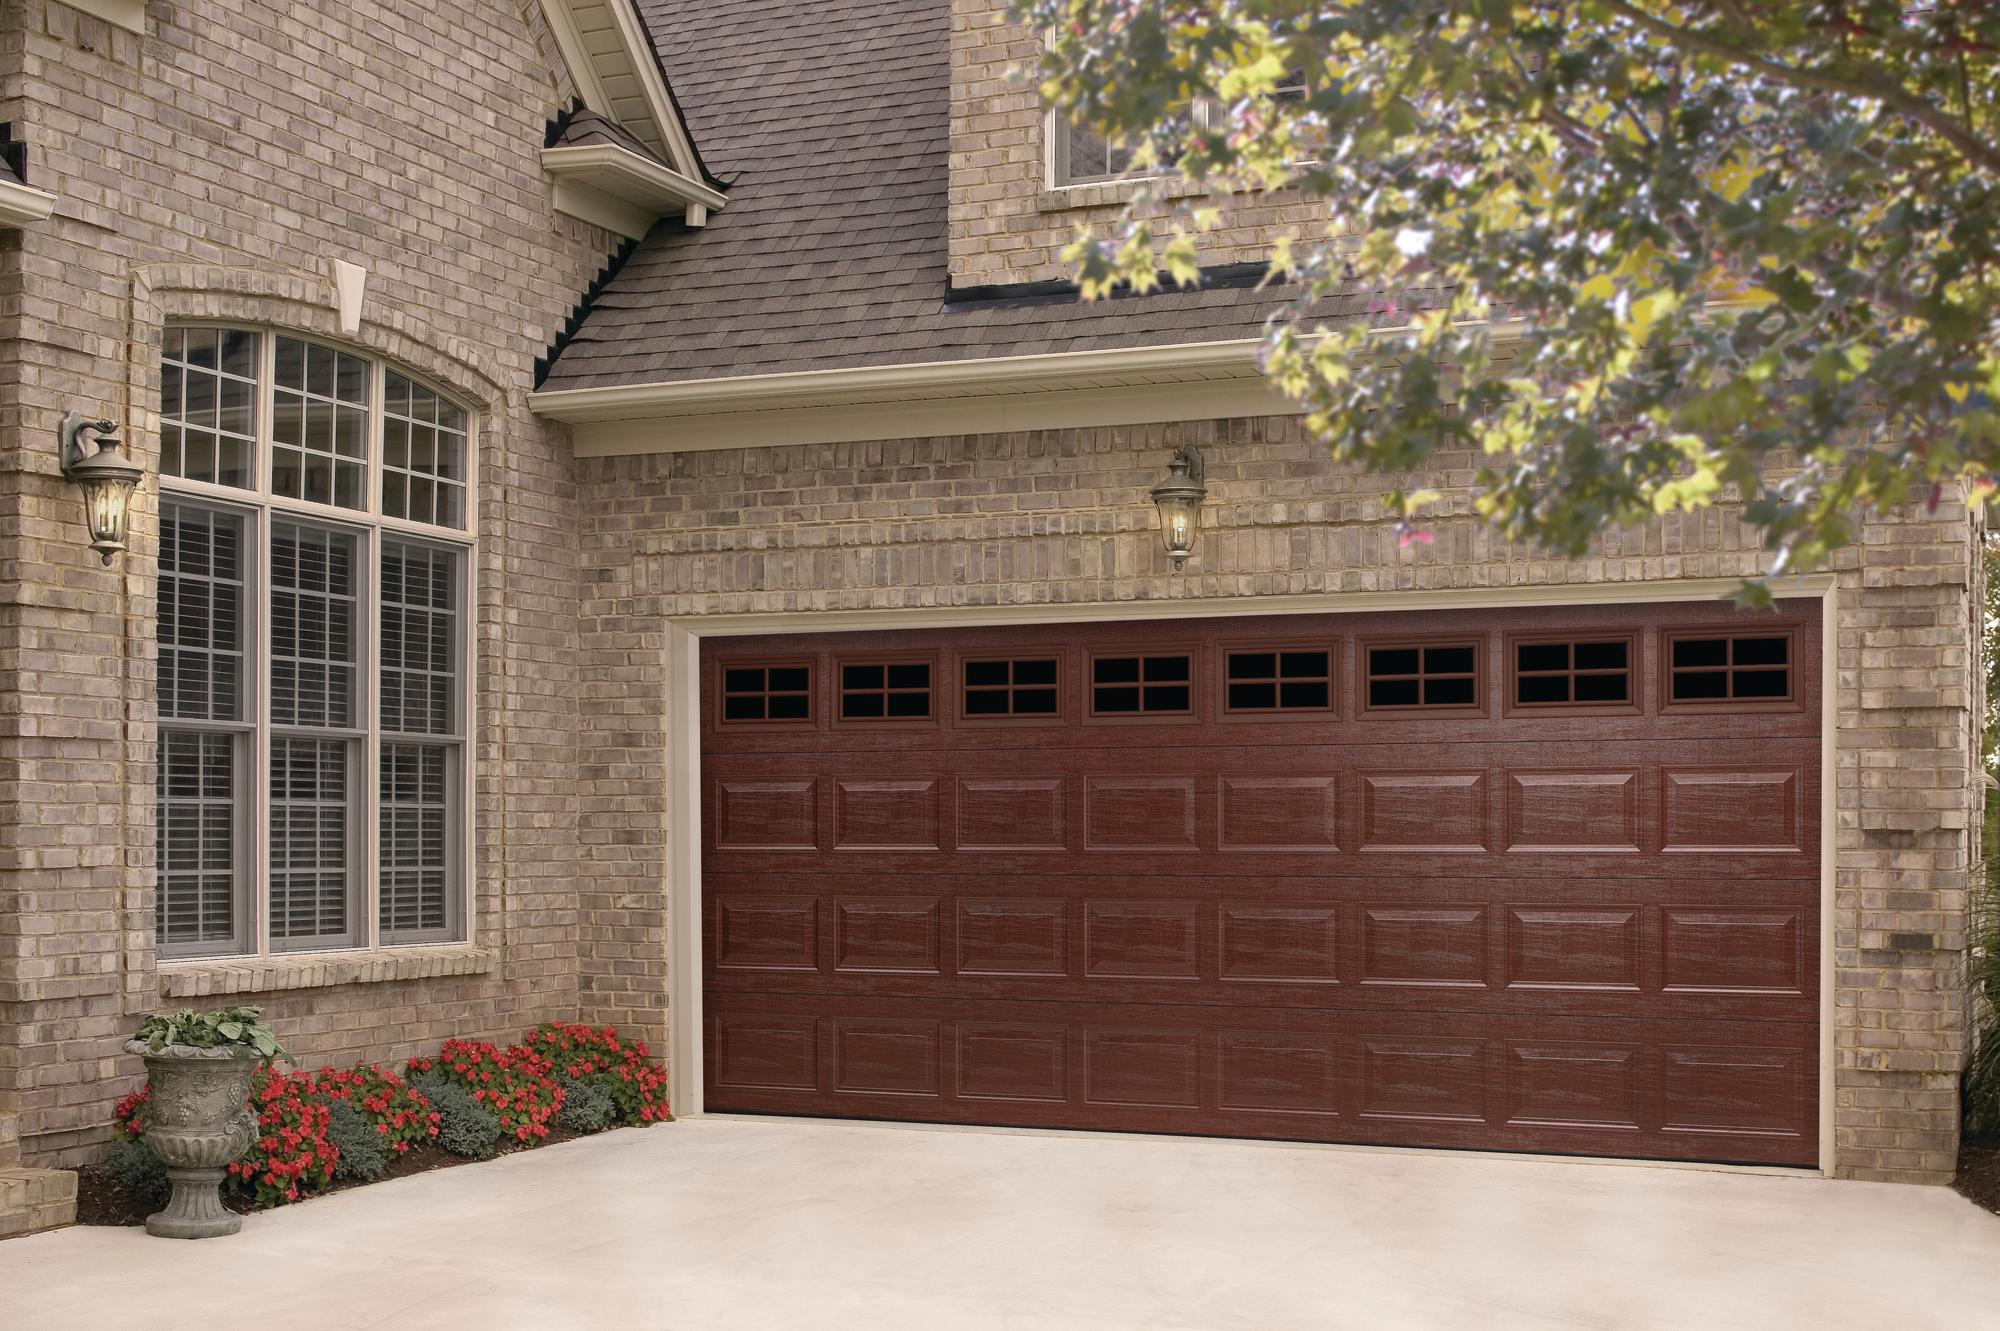 1331 #9D8E2E Amarr Medium Wood Grain Finish Remodeling Doors Exteriors  image Amar Garage Doors 37332000